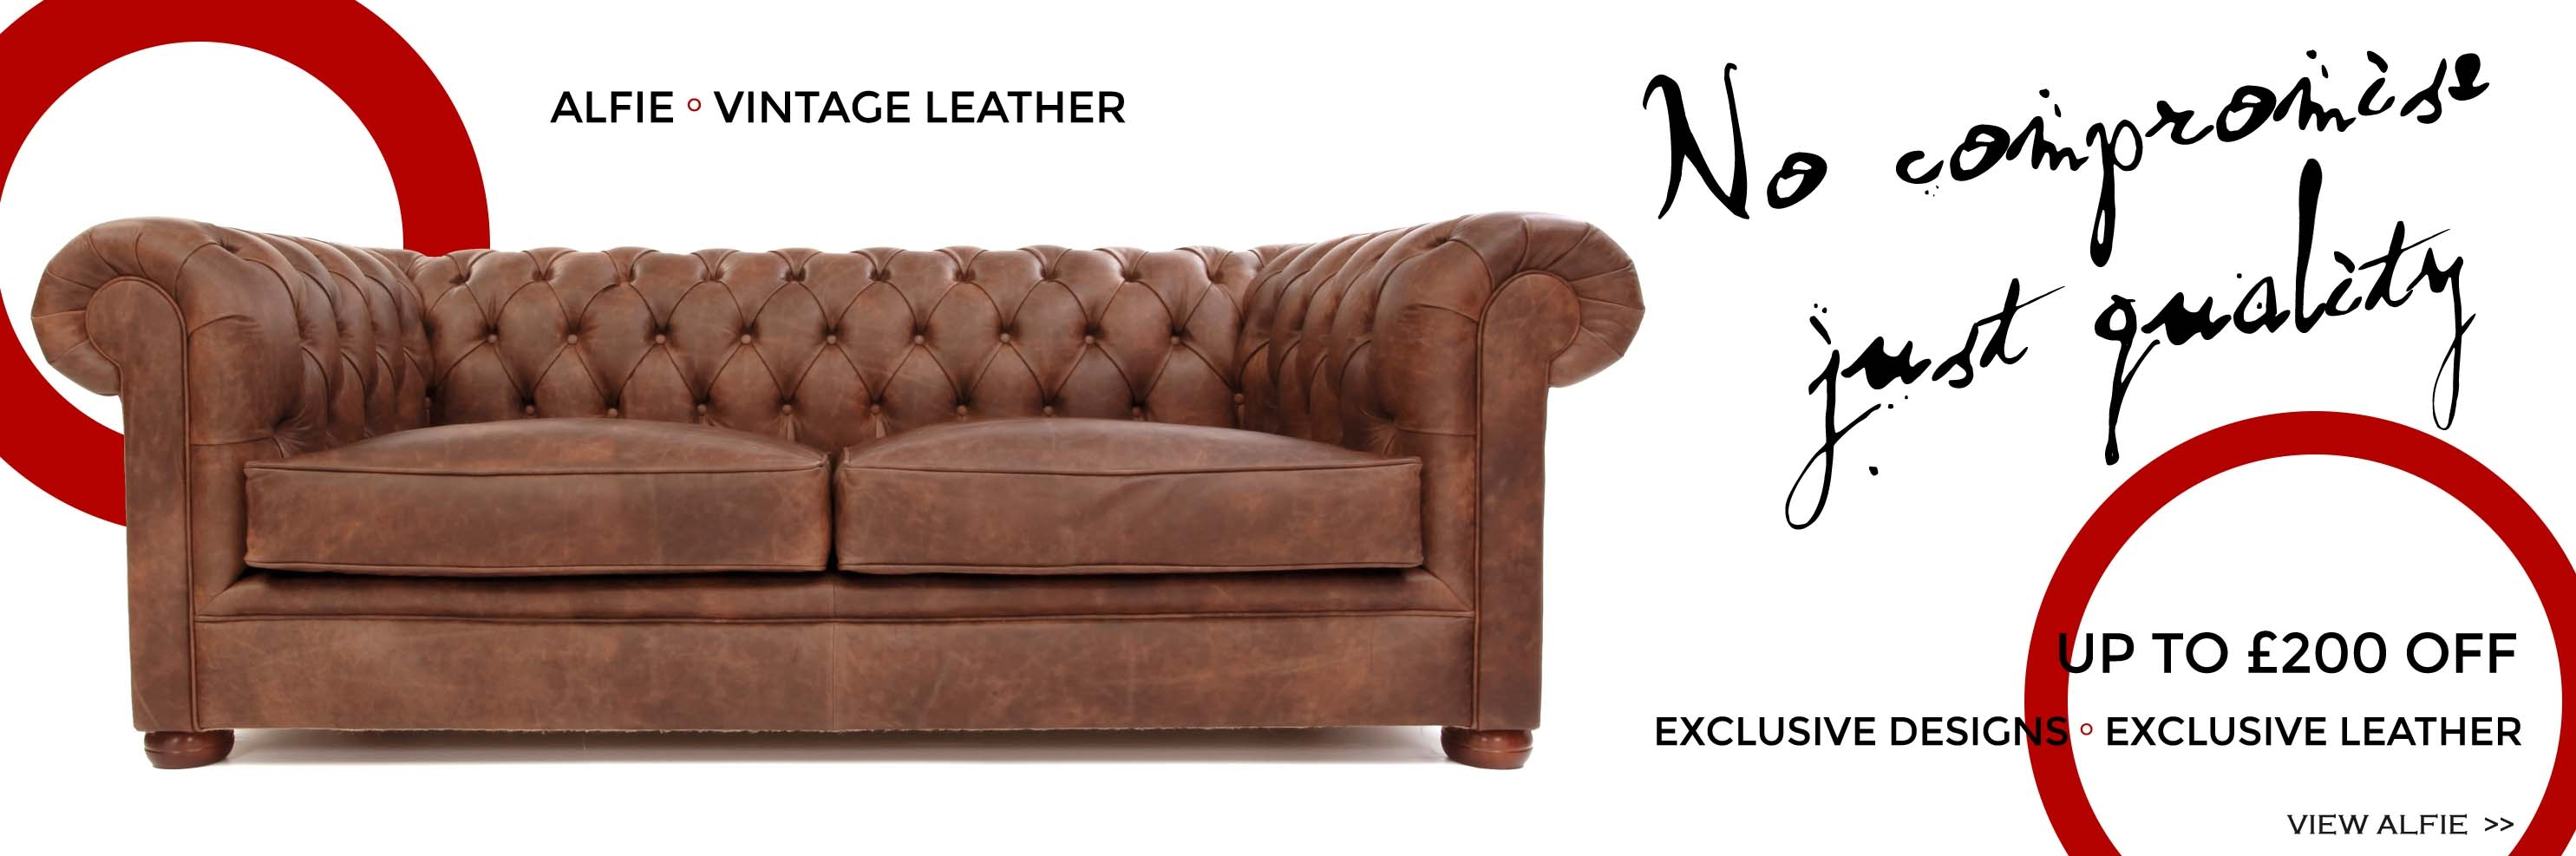 Old Boot Sofas Leather Chesterfield Sofas Traditional Leather Sofas